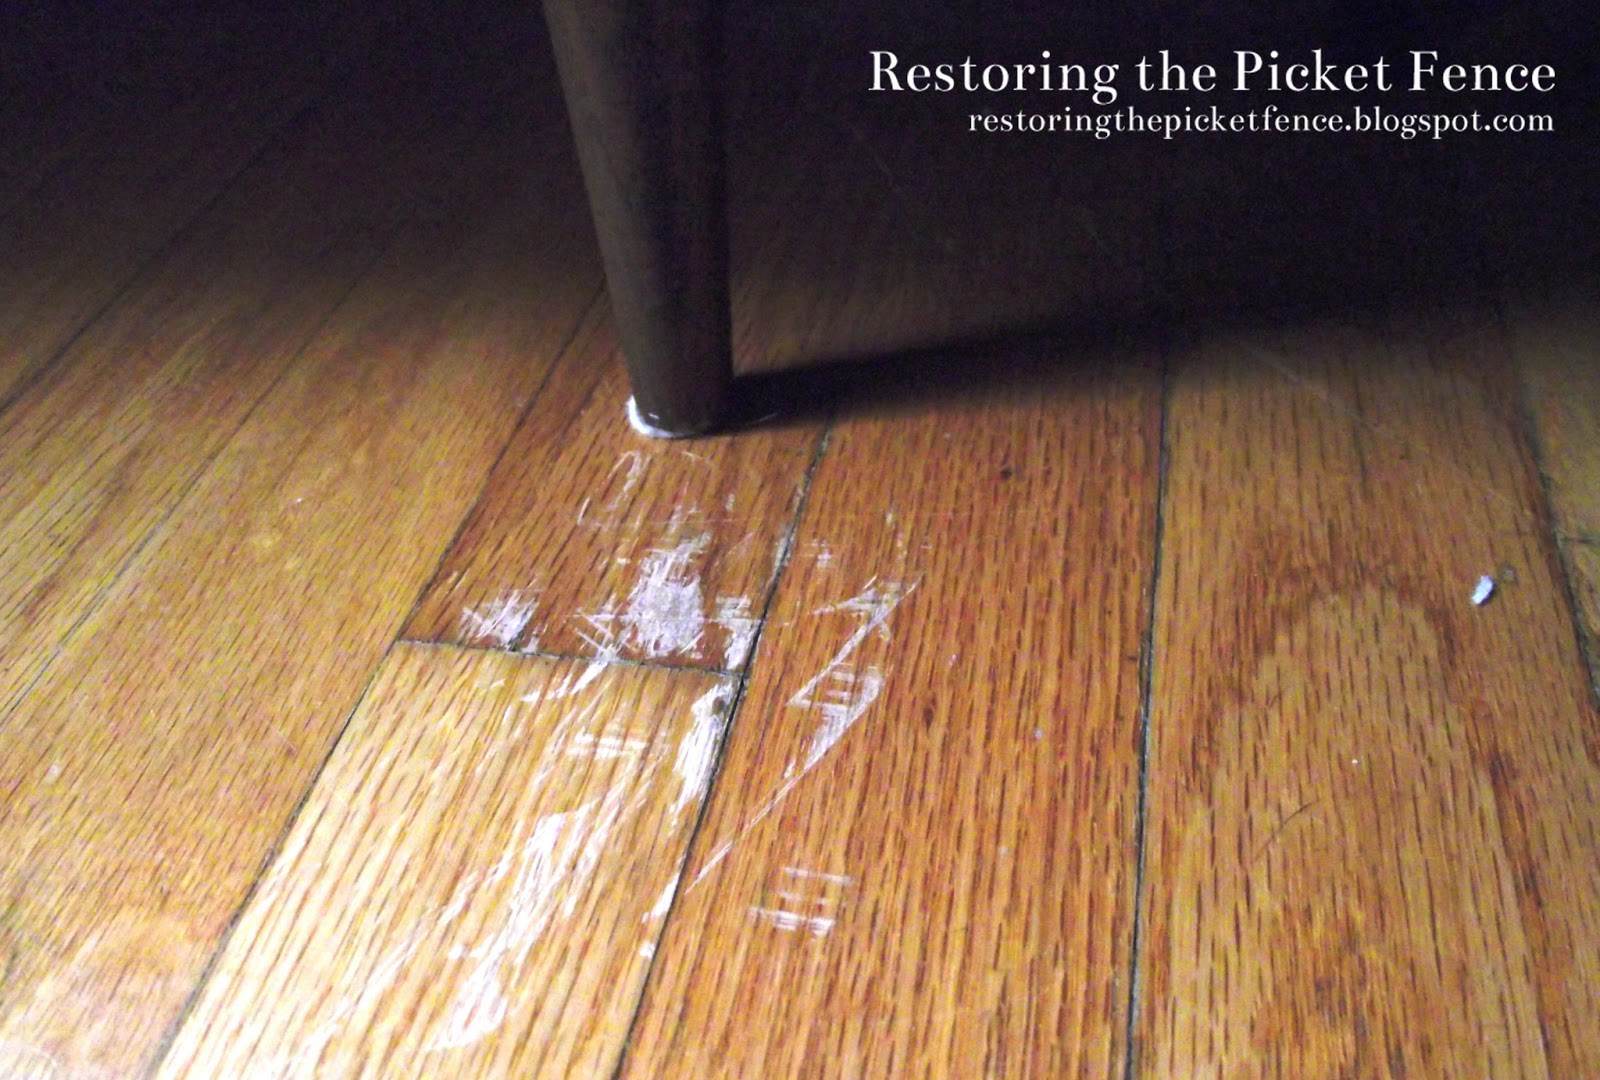 restoring the picket fence simple fixes removing scratches from a wood floor. Black Bedroom Furniture Sets. Home Design Ideas